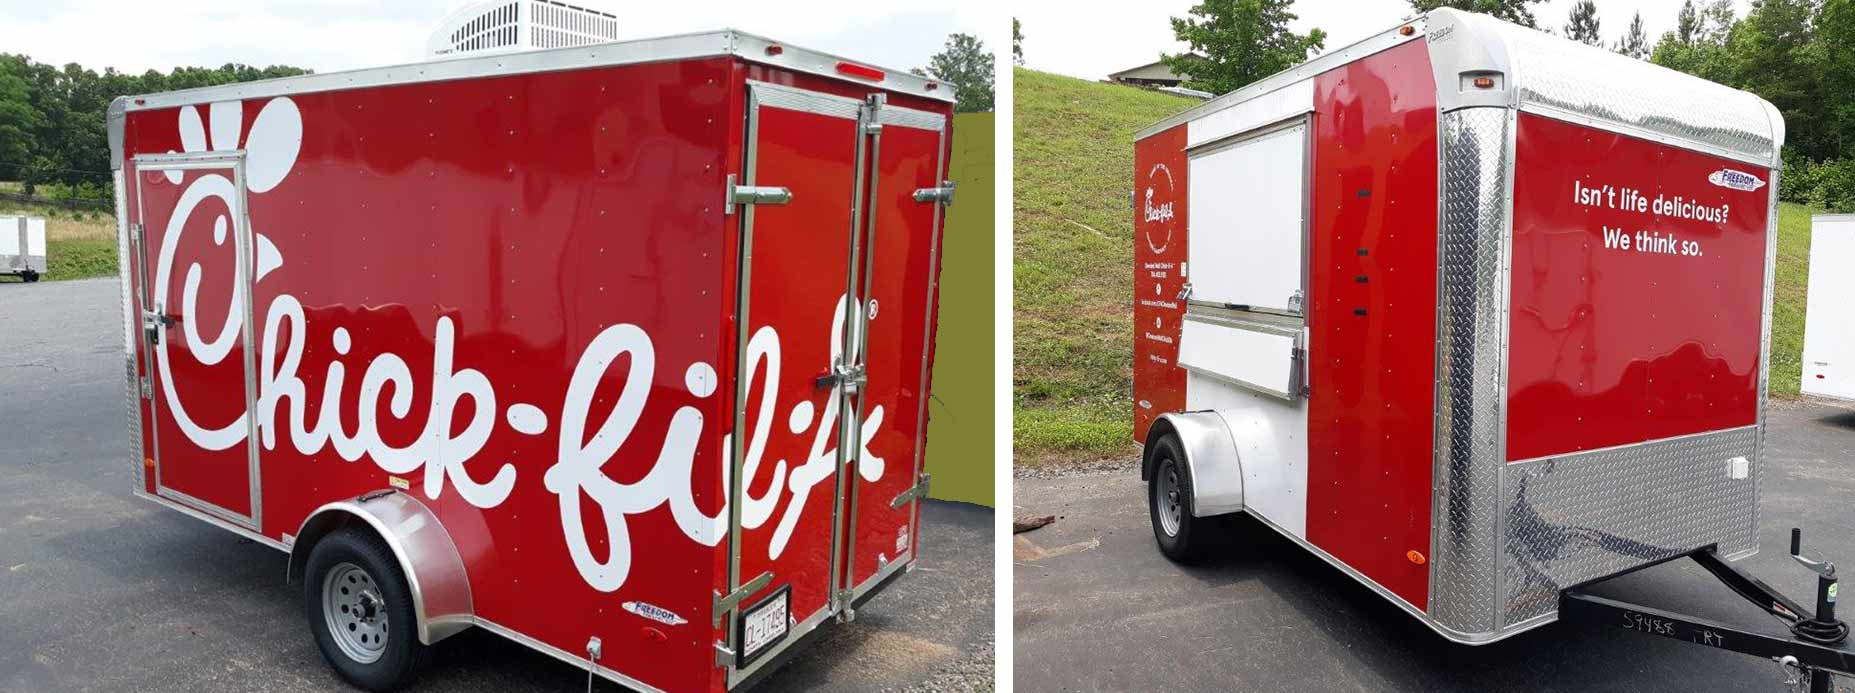 hight resolution of custom built freedom trailer for chick fil a